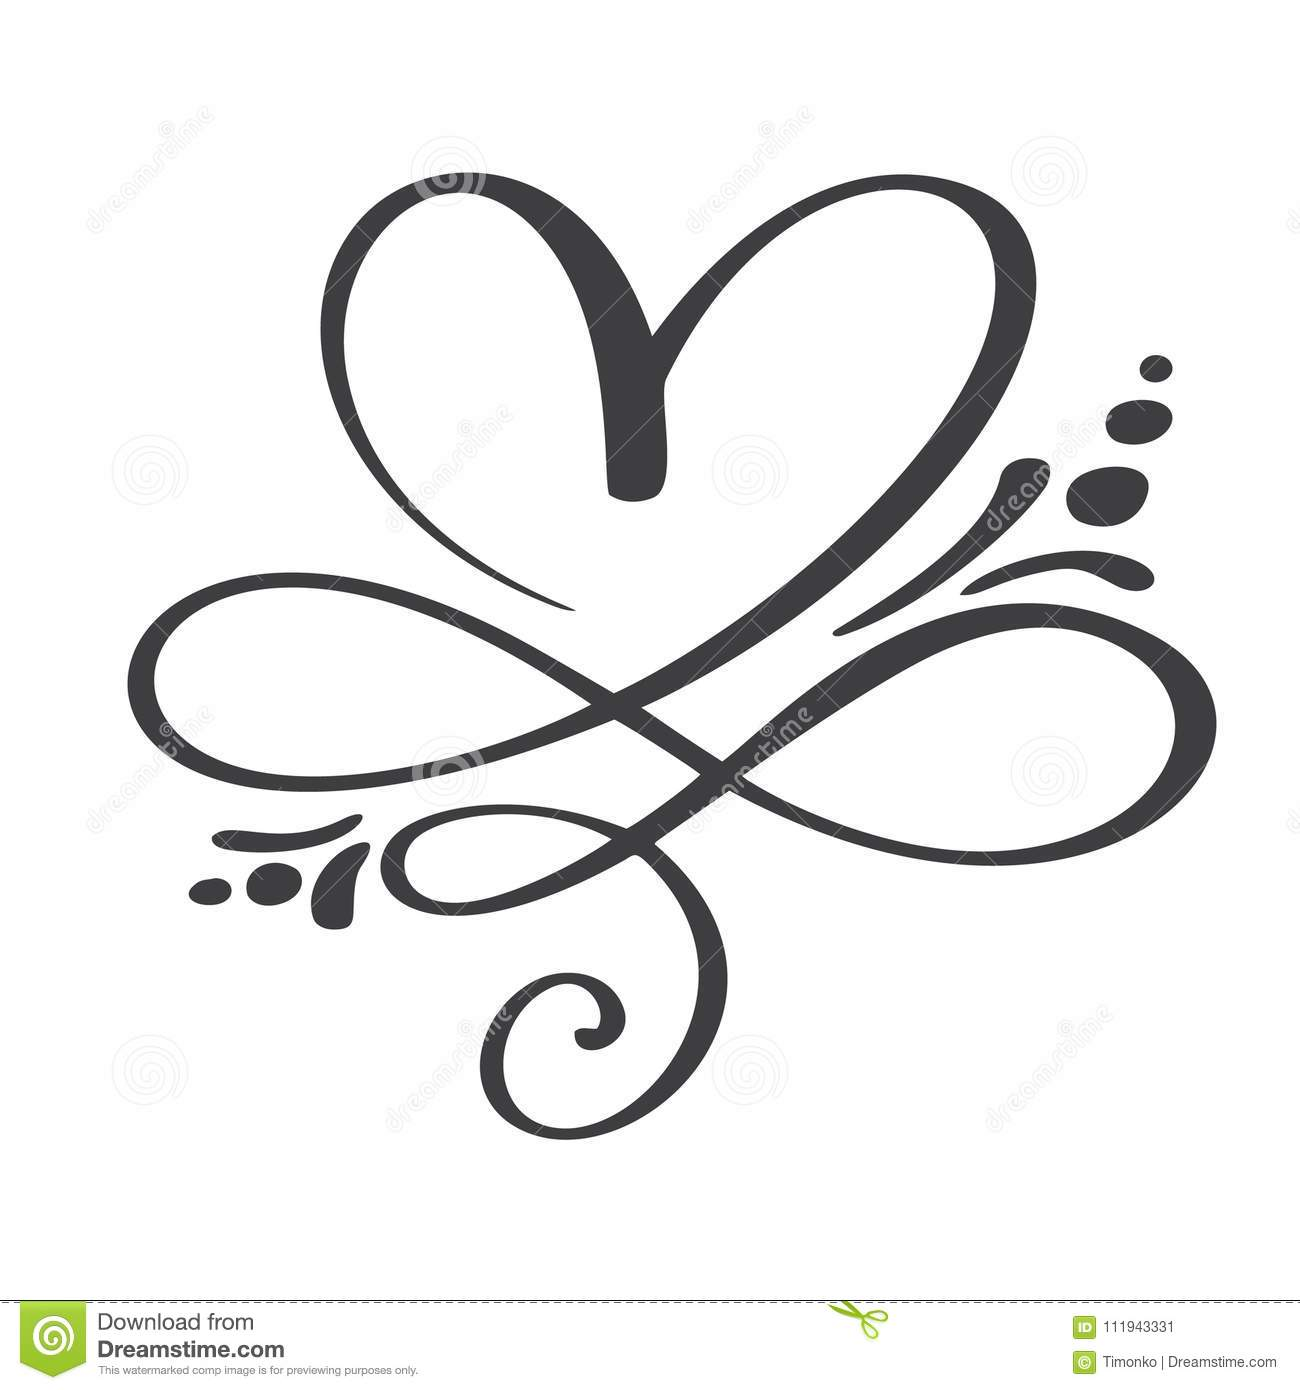 Heart Love Sign Forever Infinity Romantic Symbol Linked Join